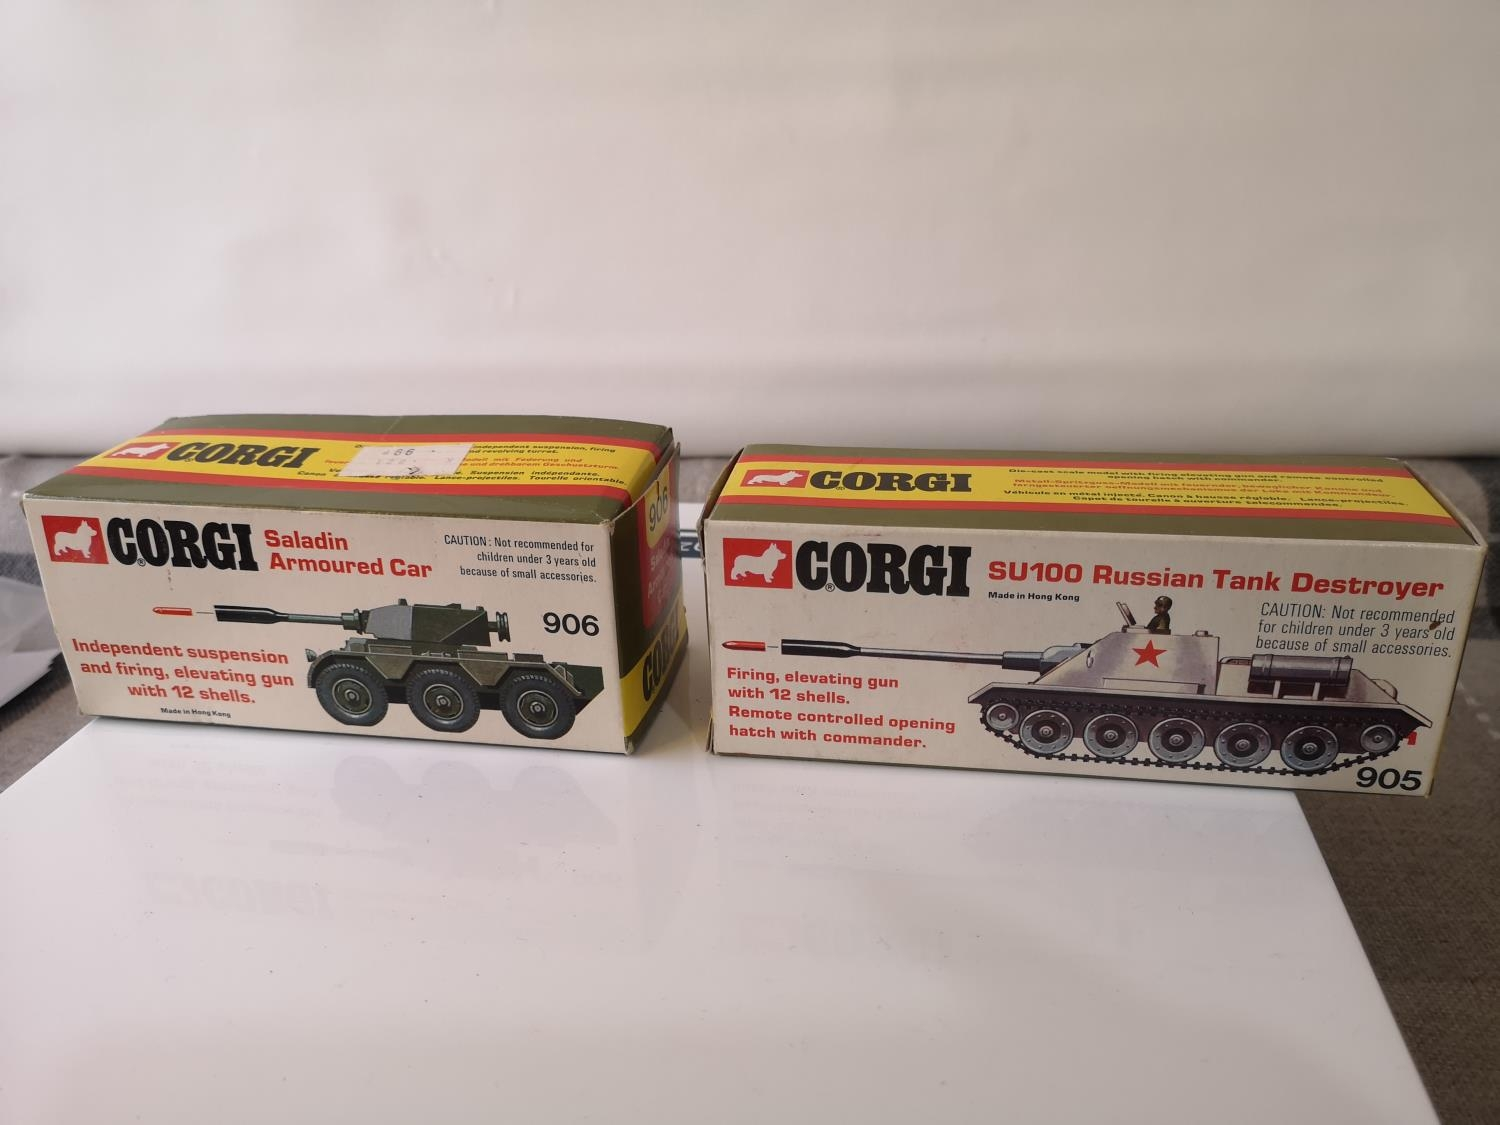 TWO CORGI MILITARY MODELS WITH BOXES. 906 SALADIN ARMOURED CAR & 905 SU100 RUSSIAN TANK DESTROYER. - Image 2 of 2